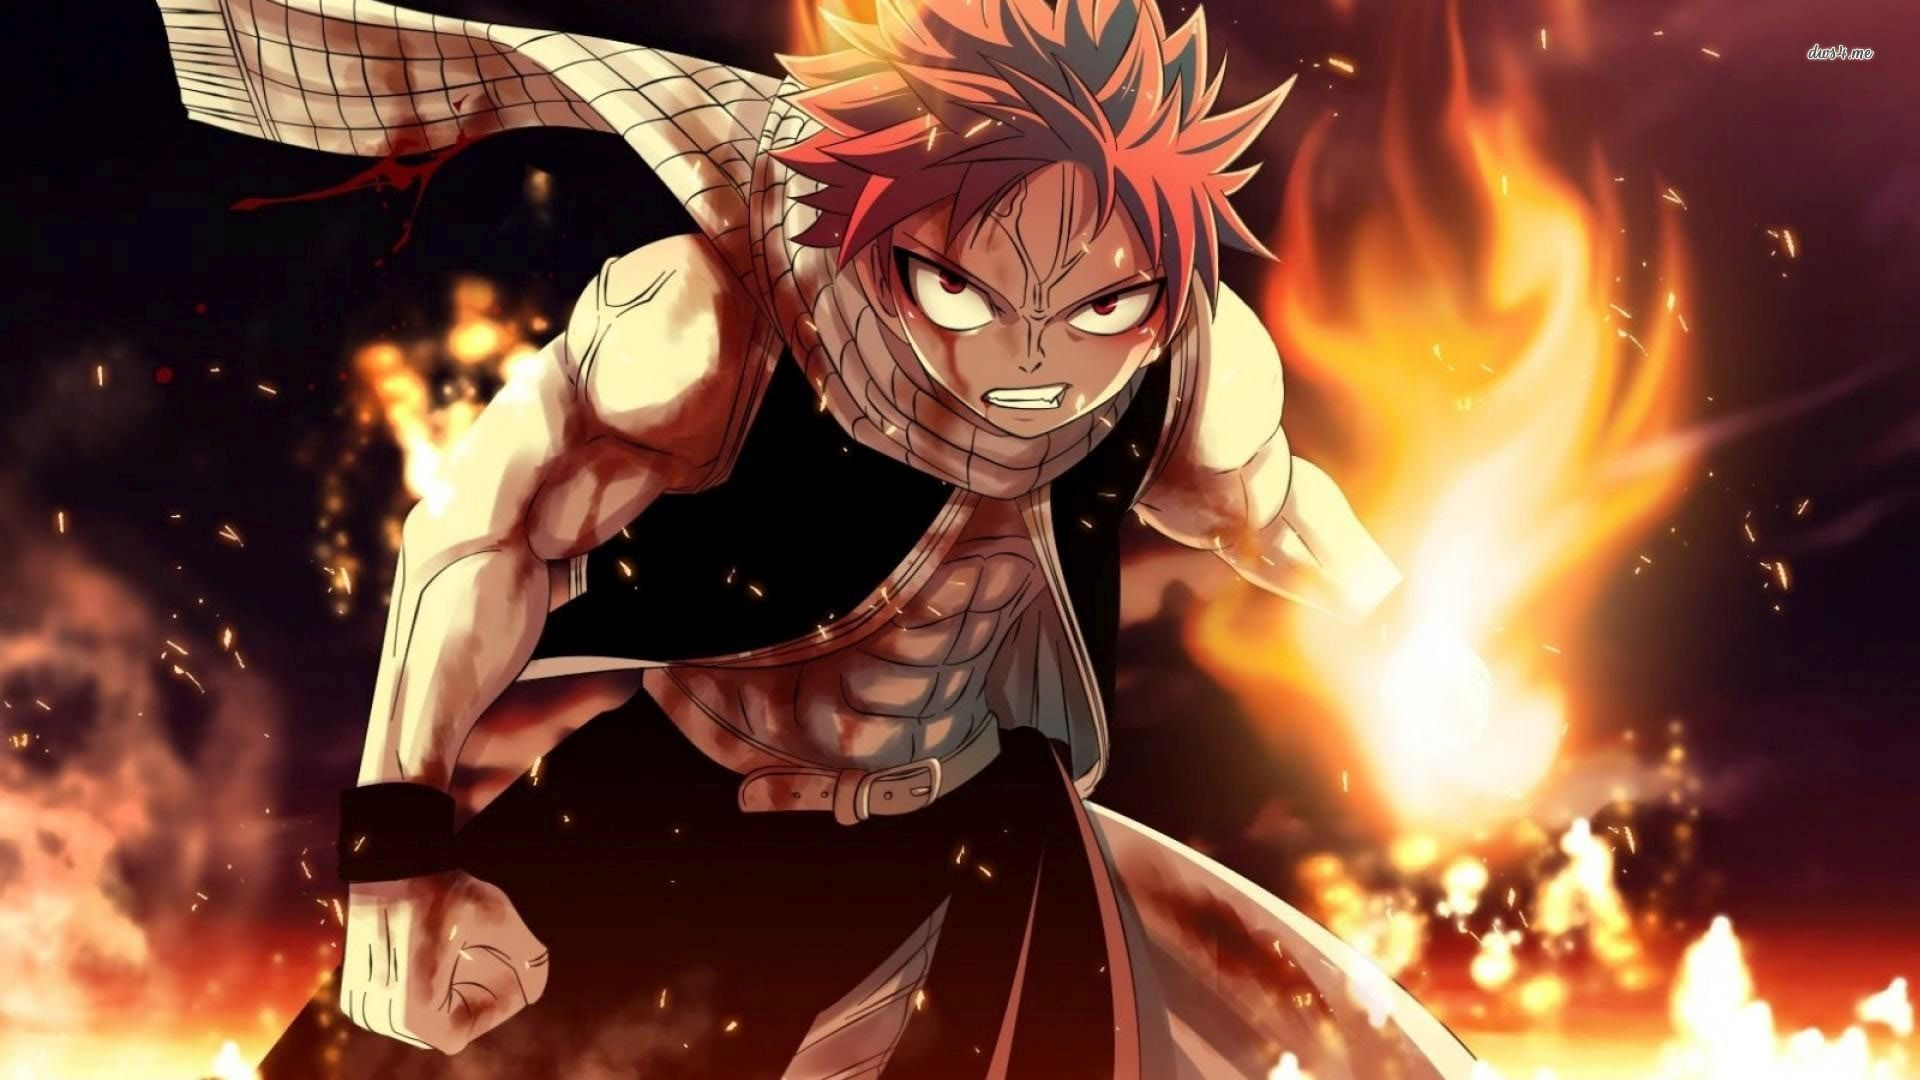 Fairy Tail Natsu Wallpapers Top Free Fairy Tail Natsu Backgrounds